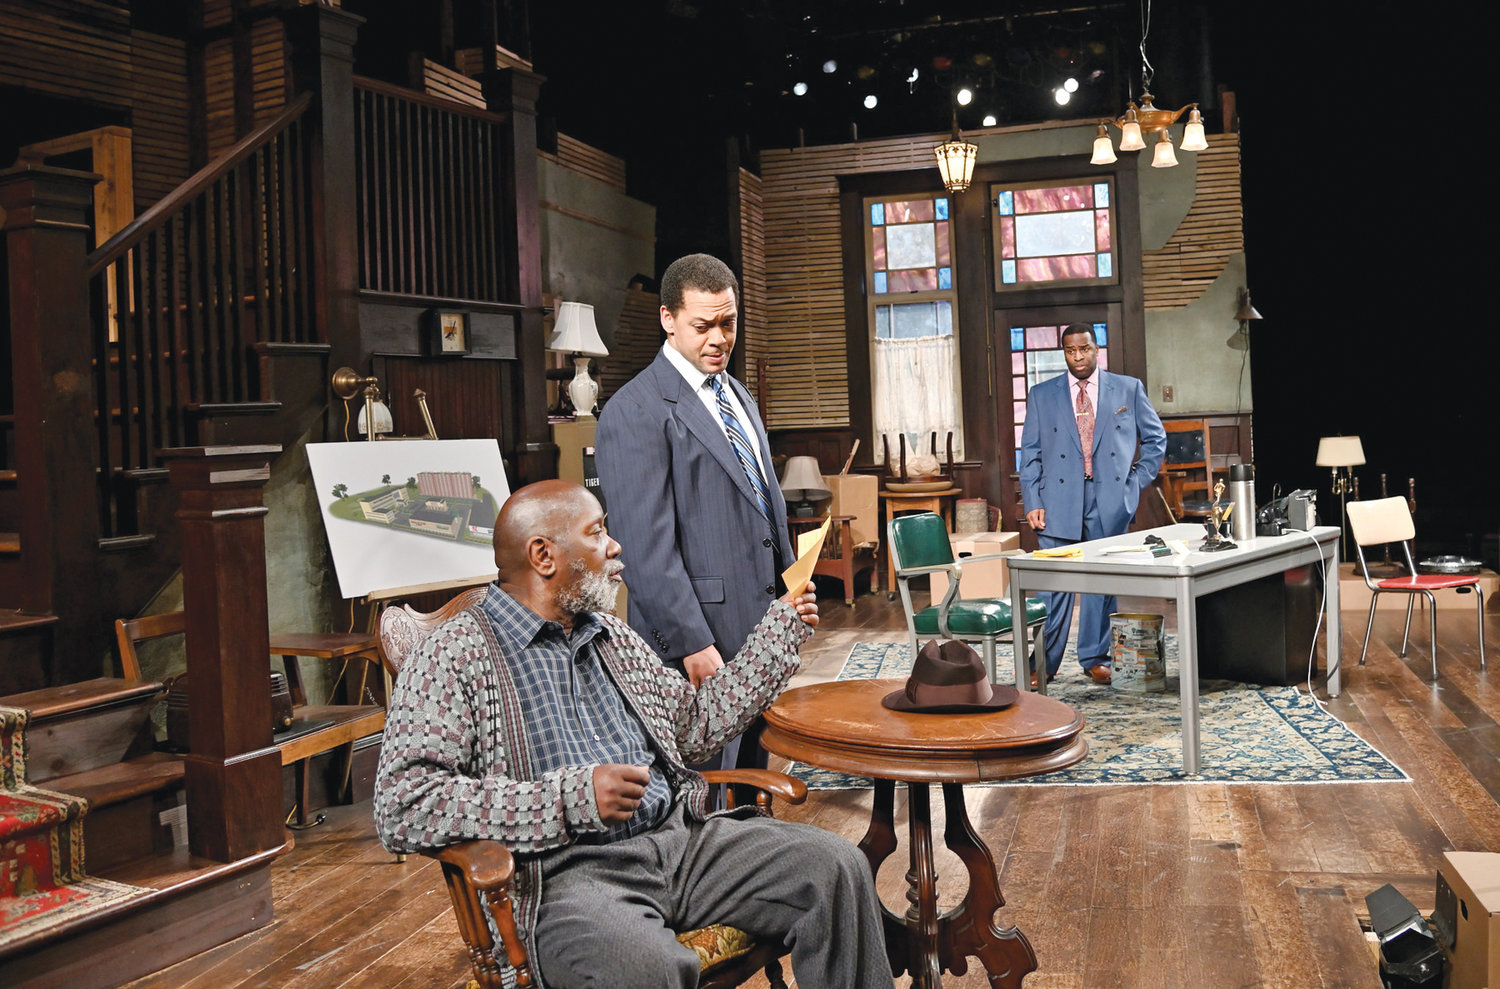 Ricardo Pitts-Wiley (front) as Elder Joseph Barlow, Joe Wilson Jr. as Harmond Wilks and Omar Robinson as Roosevelt Hicks. Directed by Jude Sandy. Set design by Michael McGarty and Baron E. Pugh, costume design by Yao Chen, lighting design by Amith Chandrashaker and sound design by Larry D. Fowler Jr.